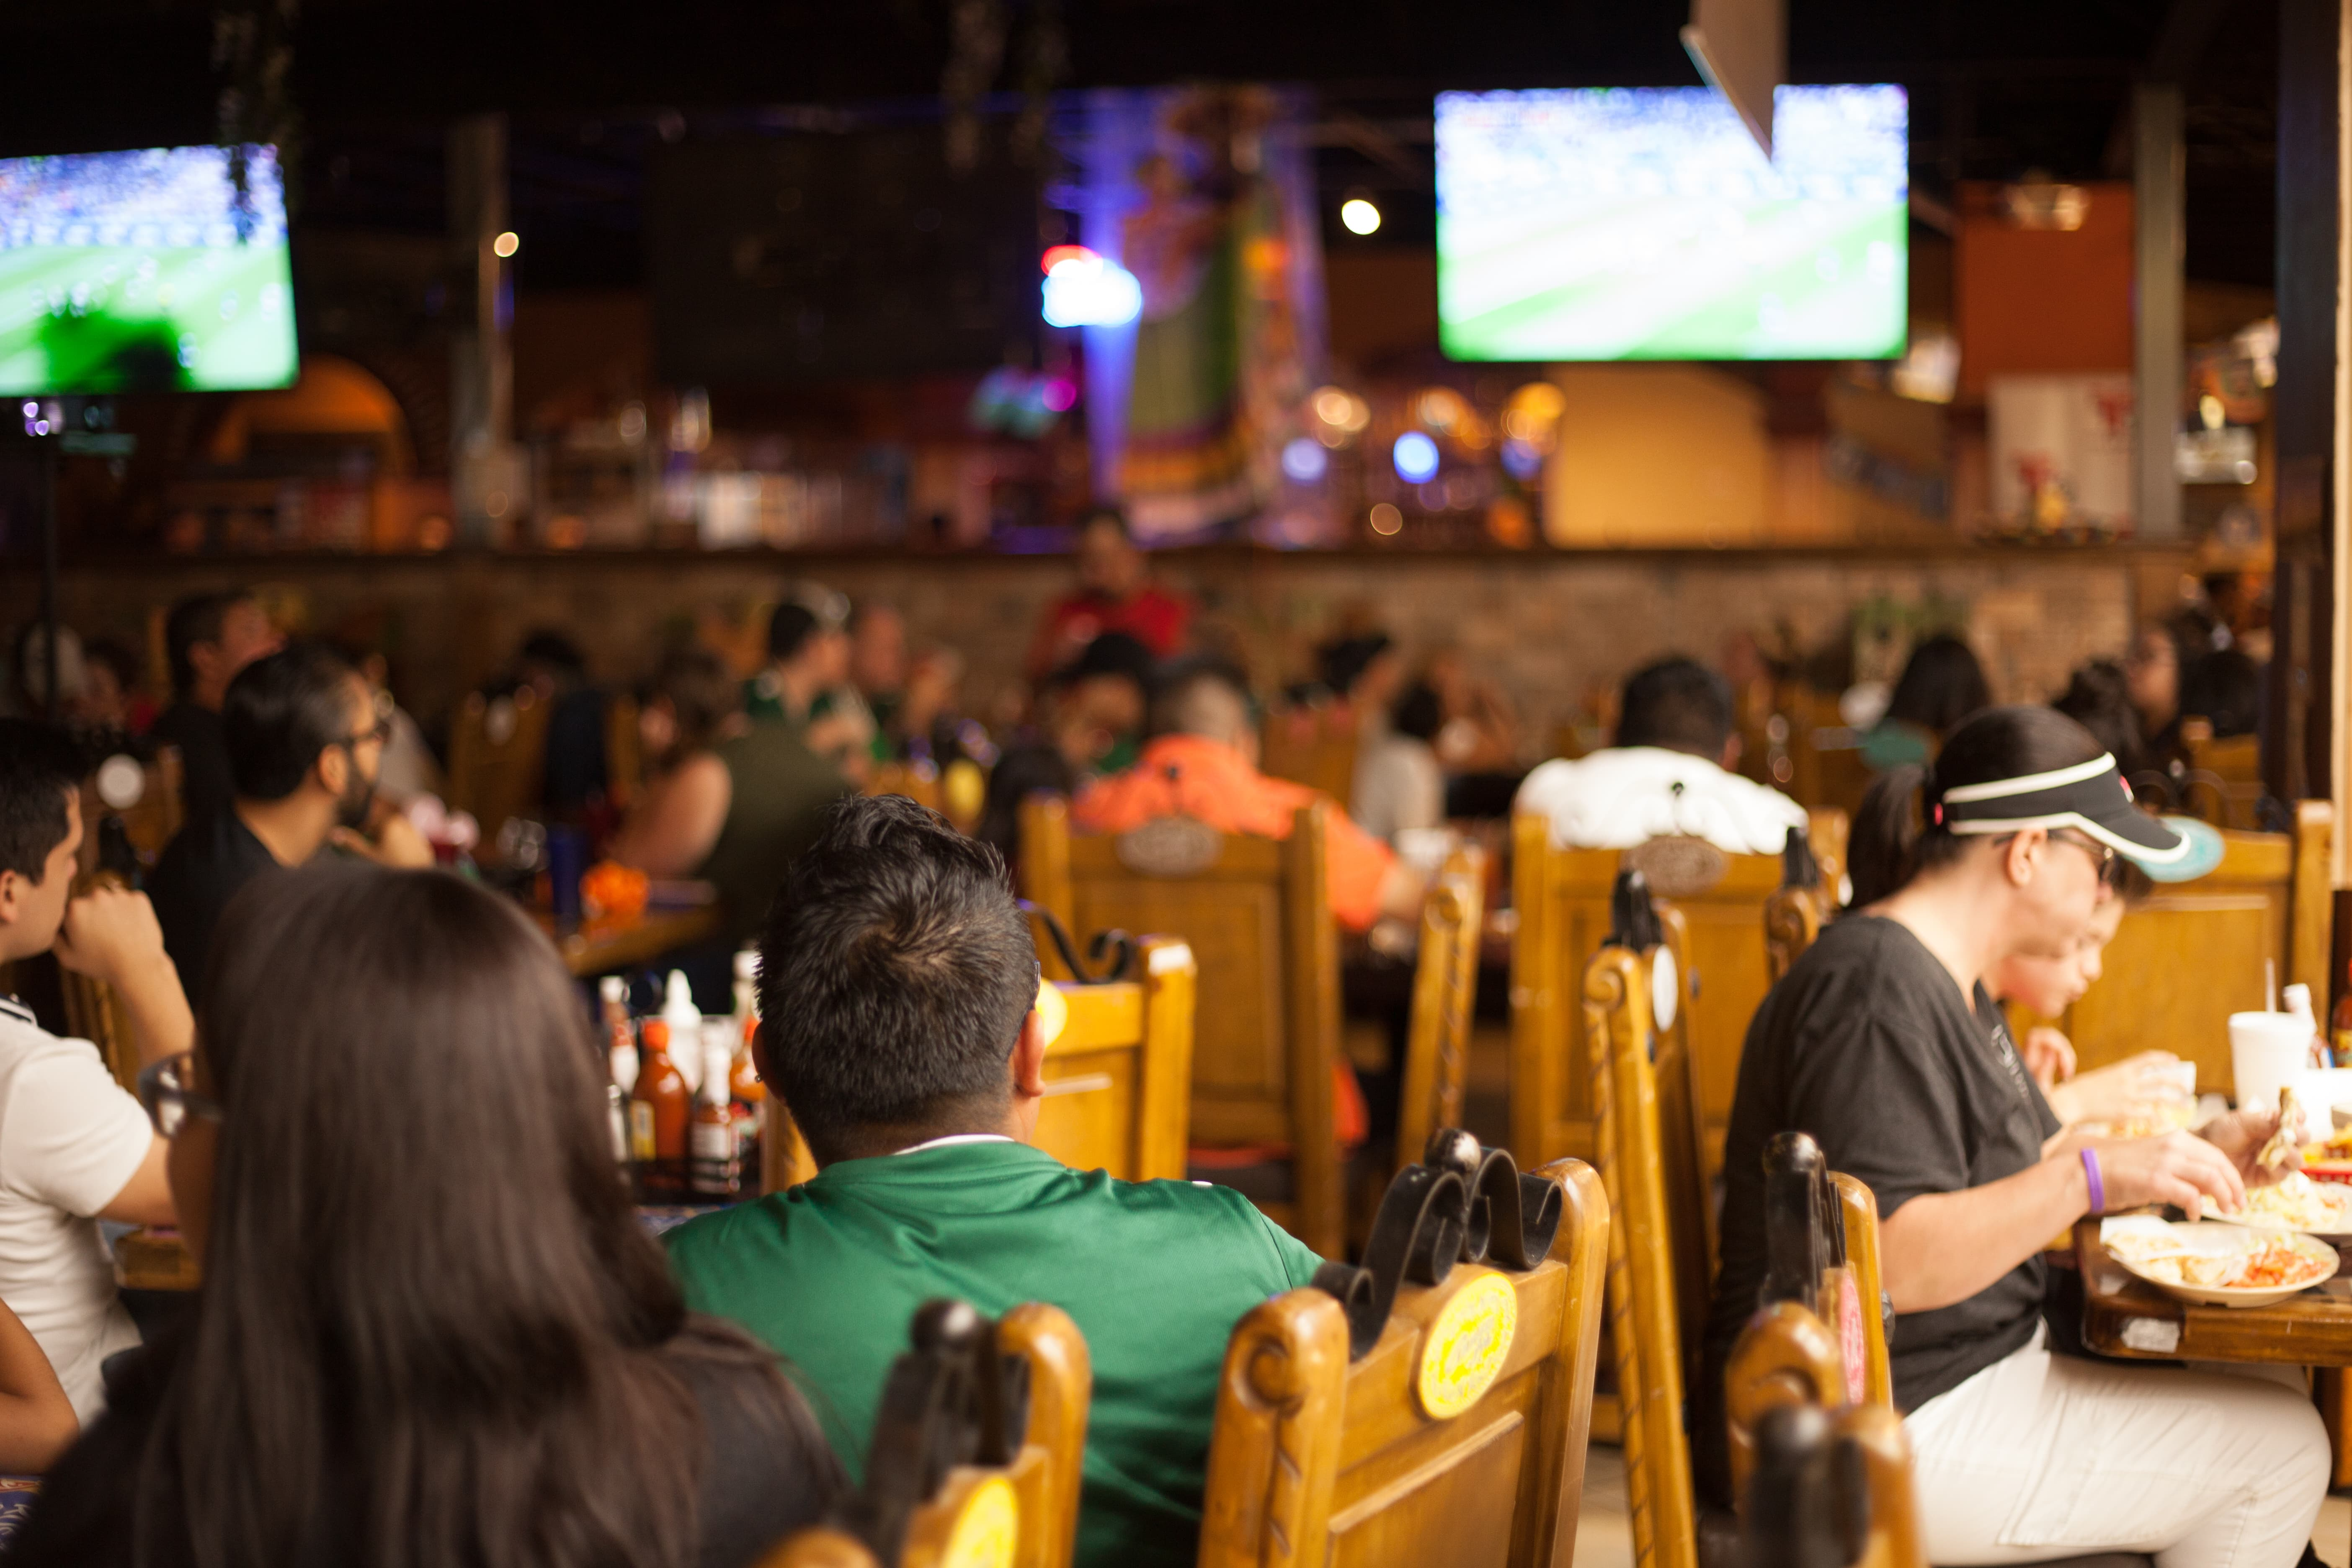 World Cup Watch Party Photos (6/17/18)